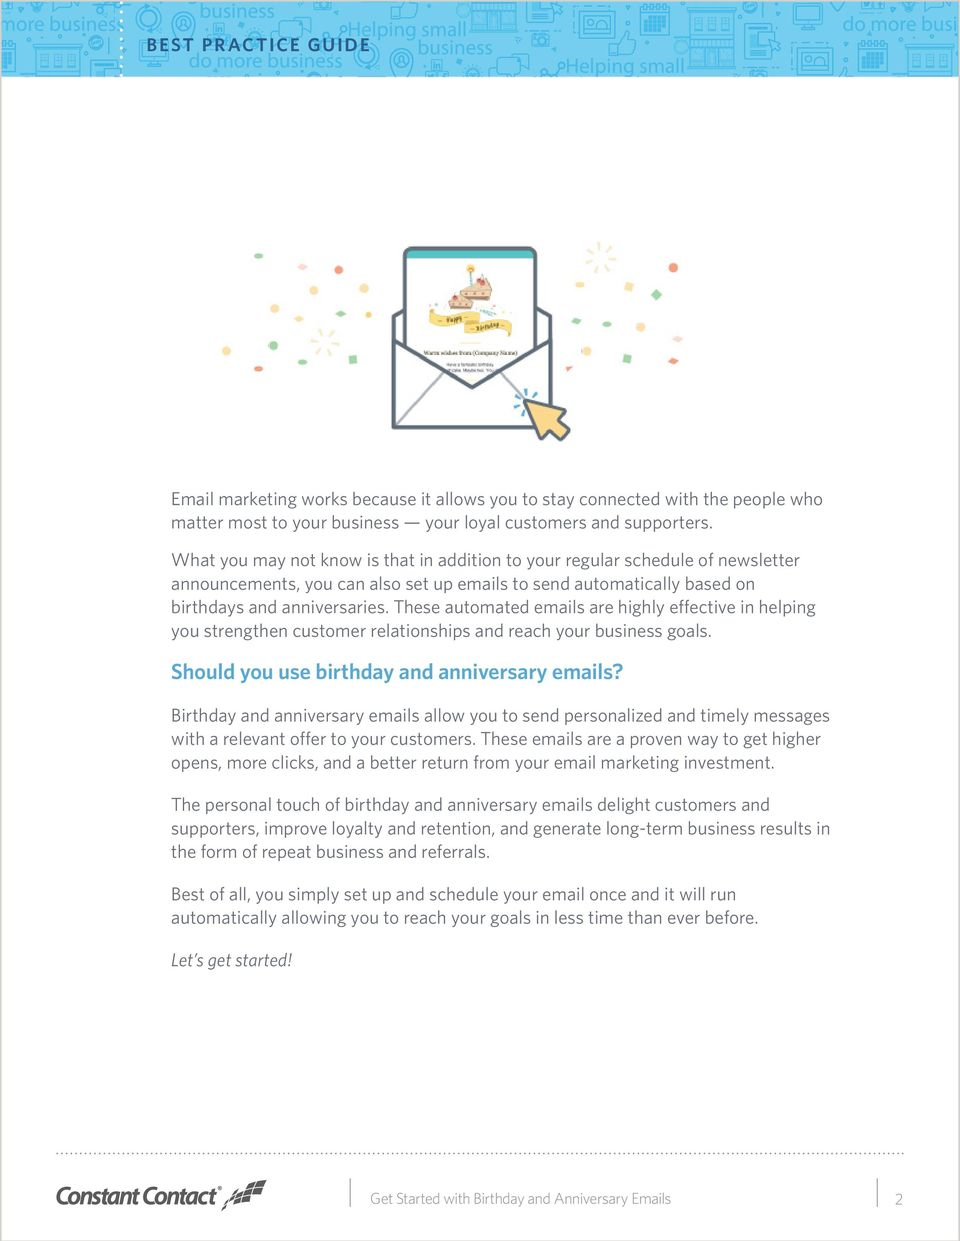 These automated emails are highly effective in helping you strengthen customer relationships and reach your business goals. Should you use birthday and anniversary emails?